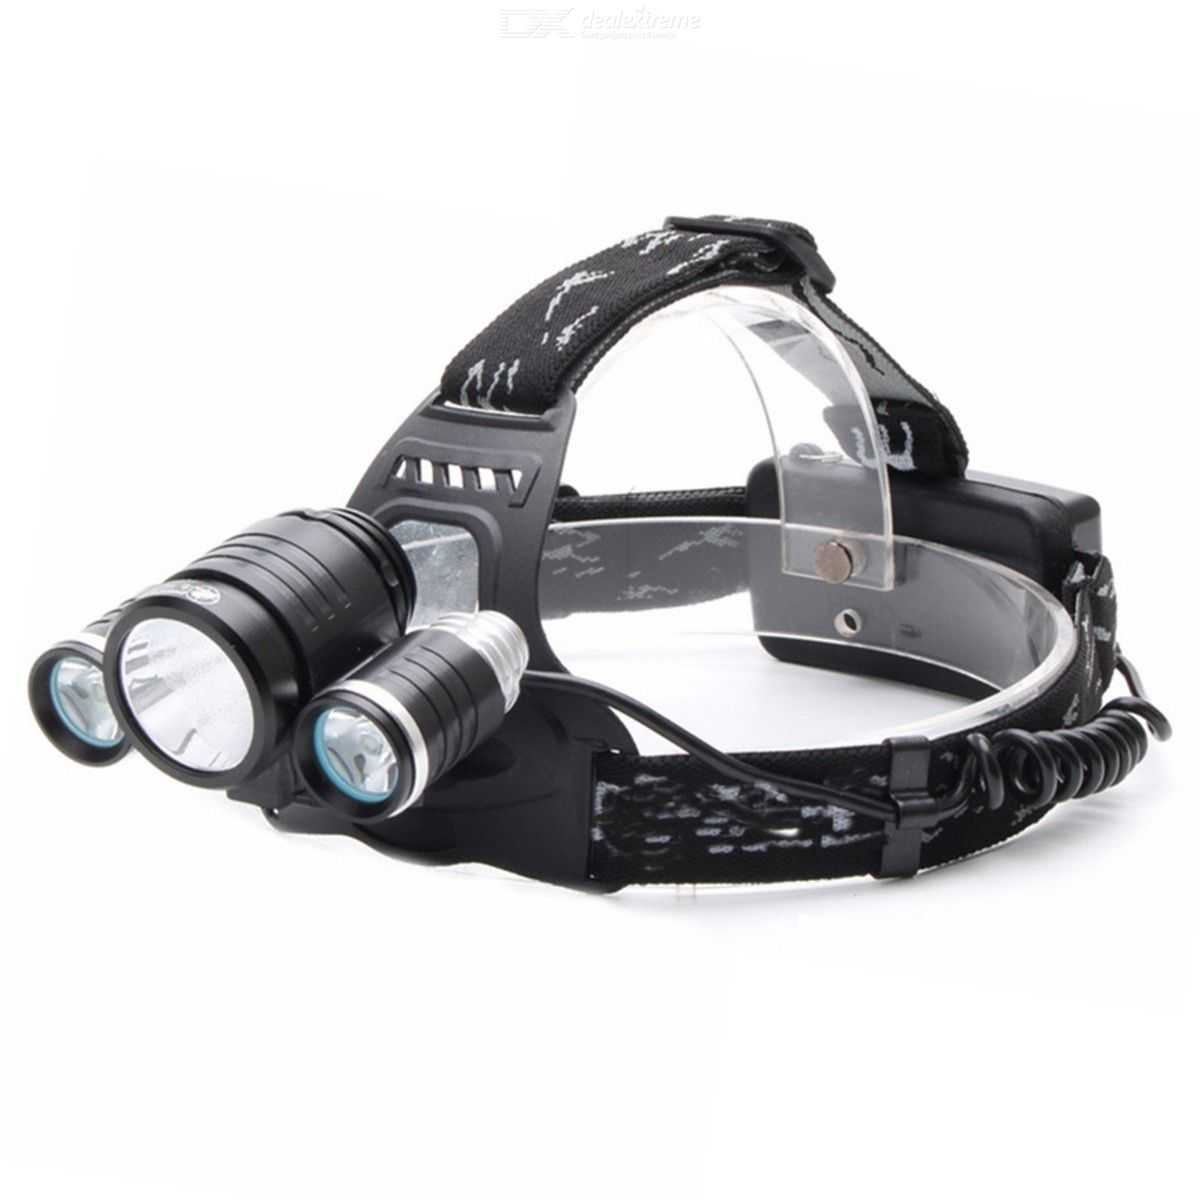 3 Led Headlamp XM-L T6 Headlight light Lantern head Lamp Flashlight Rechargeable 18650 battery hunting fishing lighting